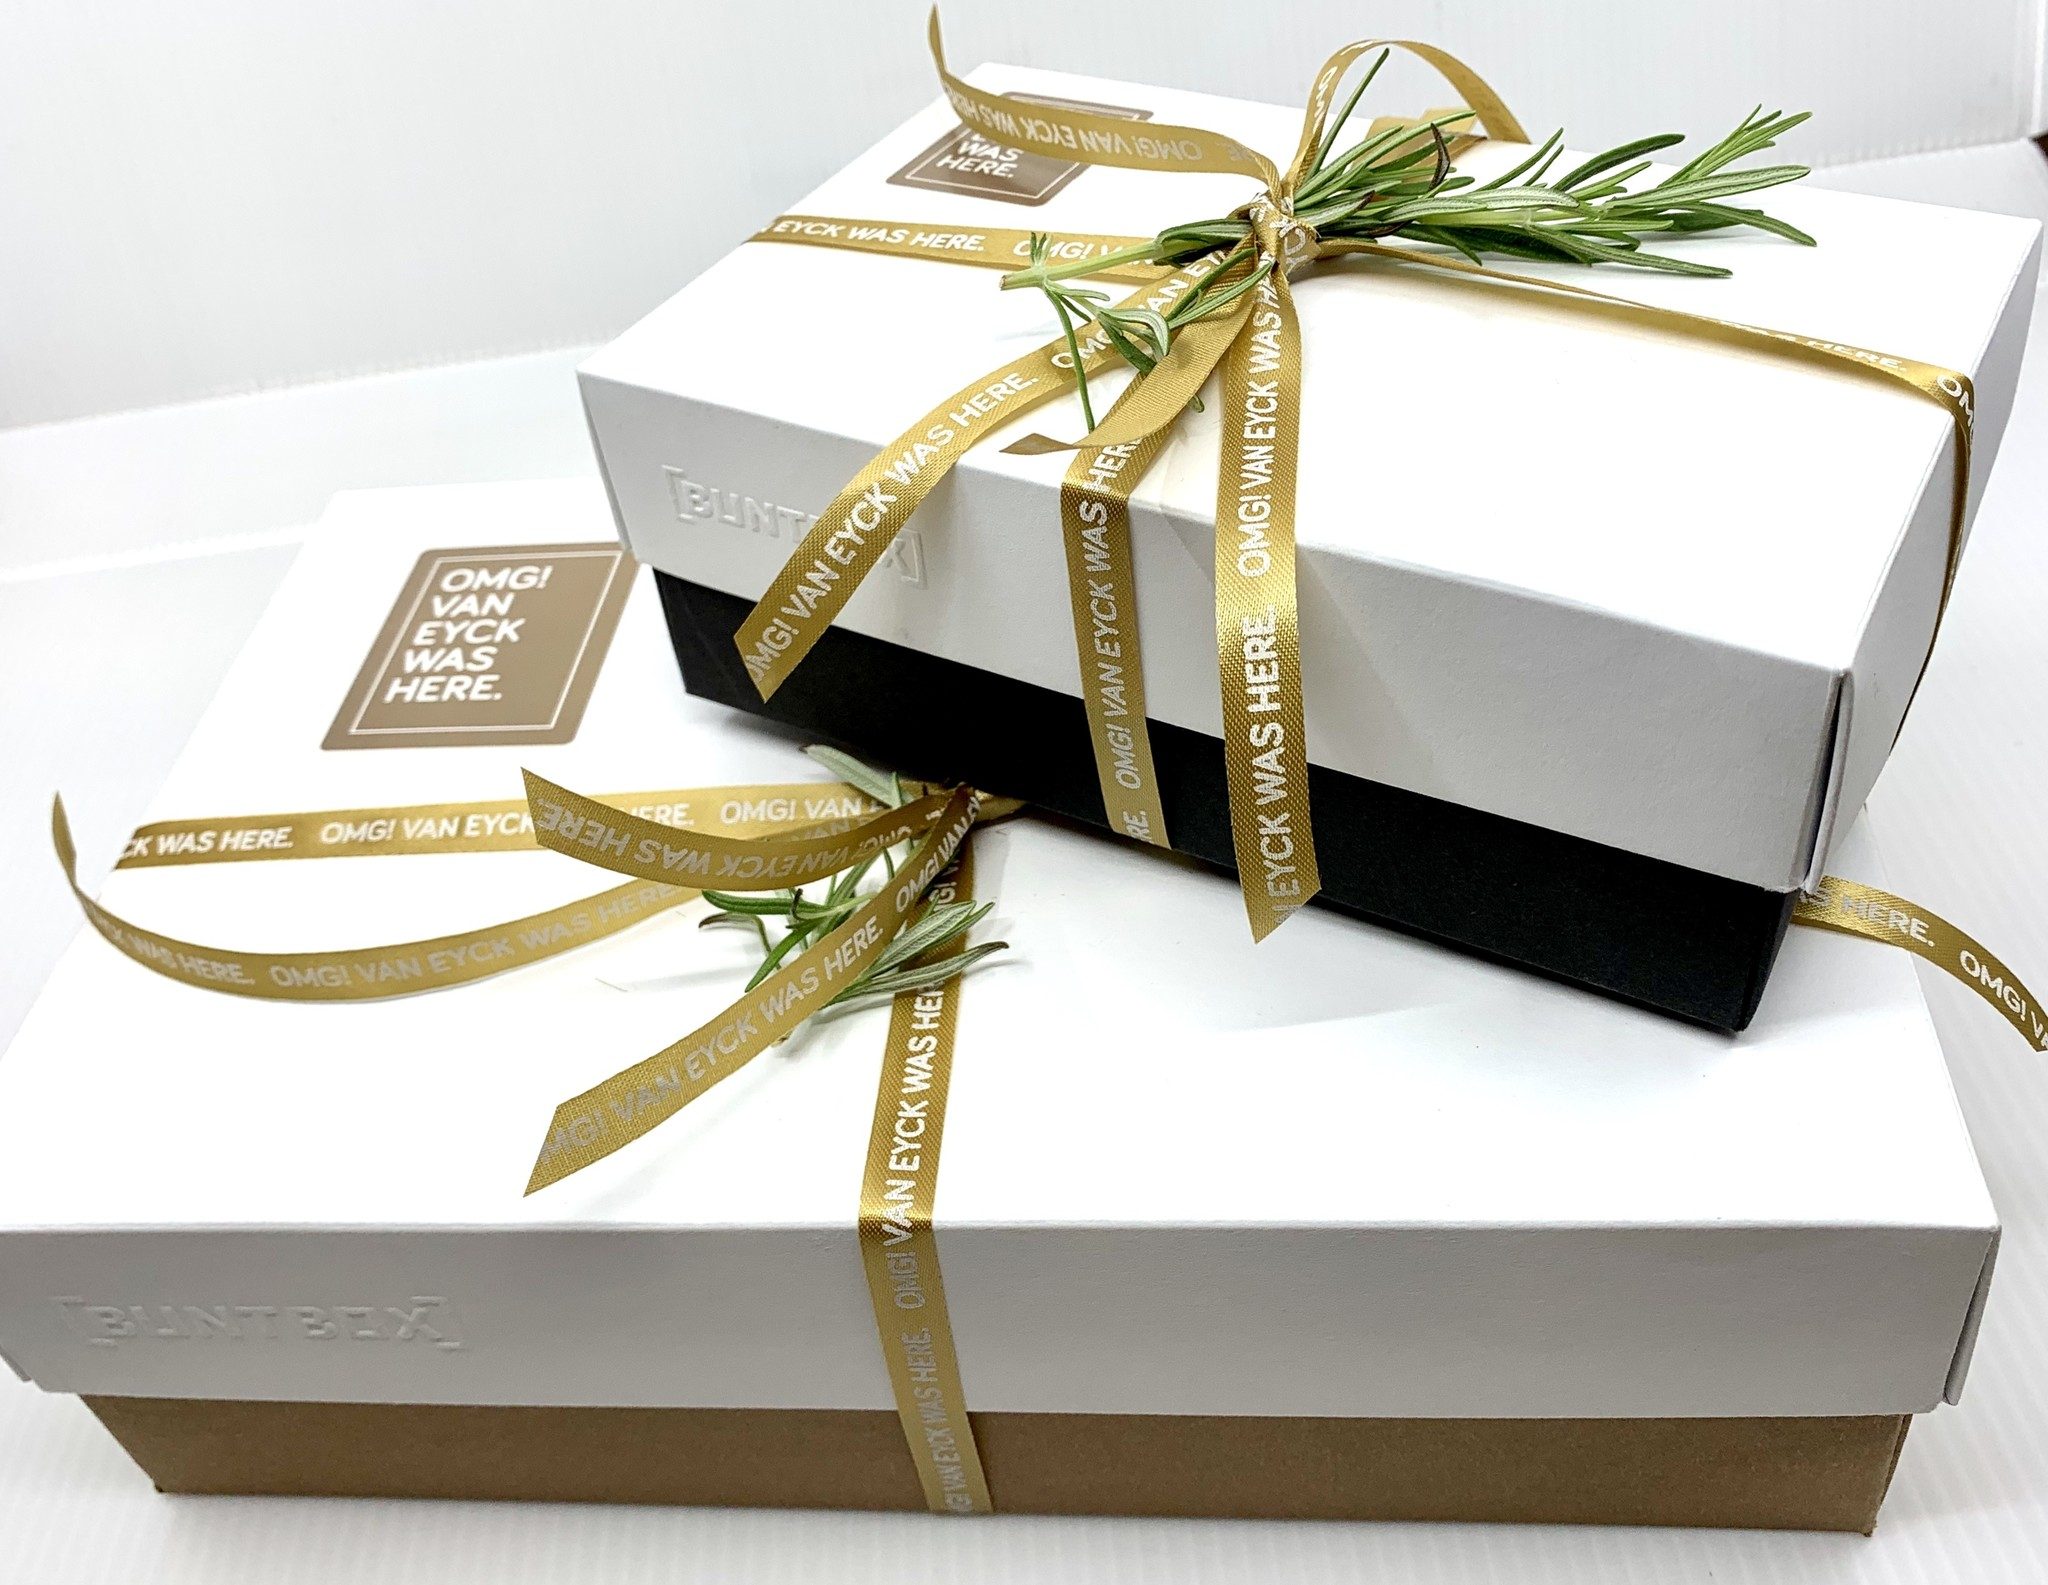 Van Eyck shop Gift box 'Giving all the details'